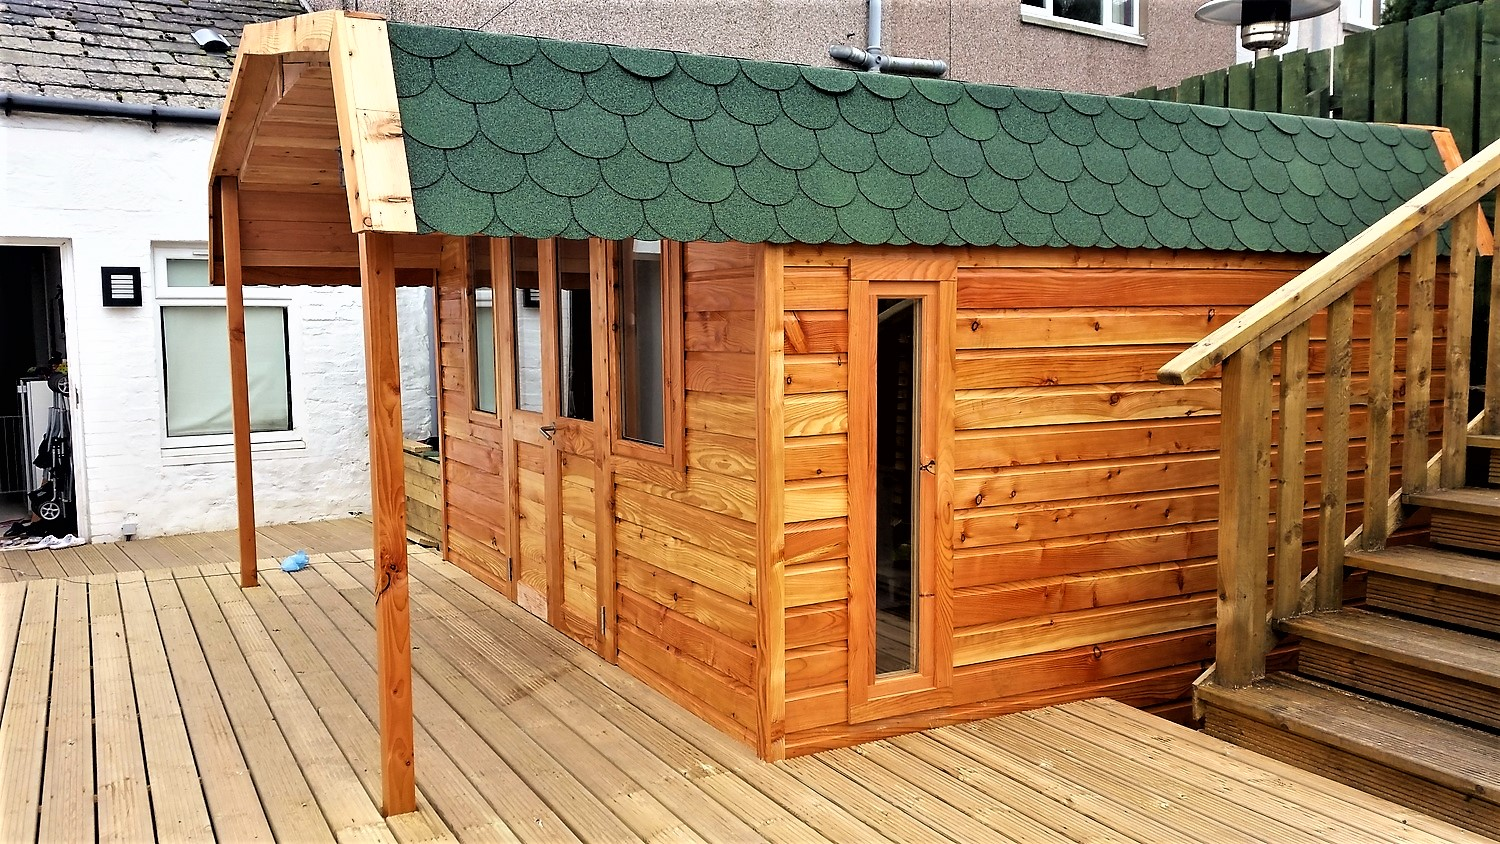 Sheds / Garages, Conservatories, Cabins, Camping & Glamping Pods